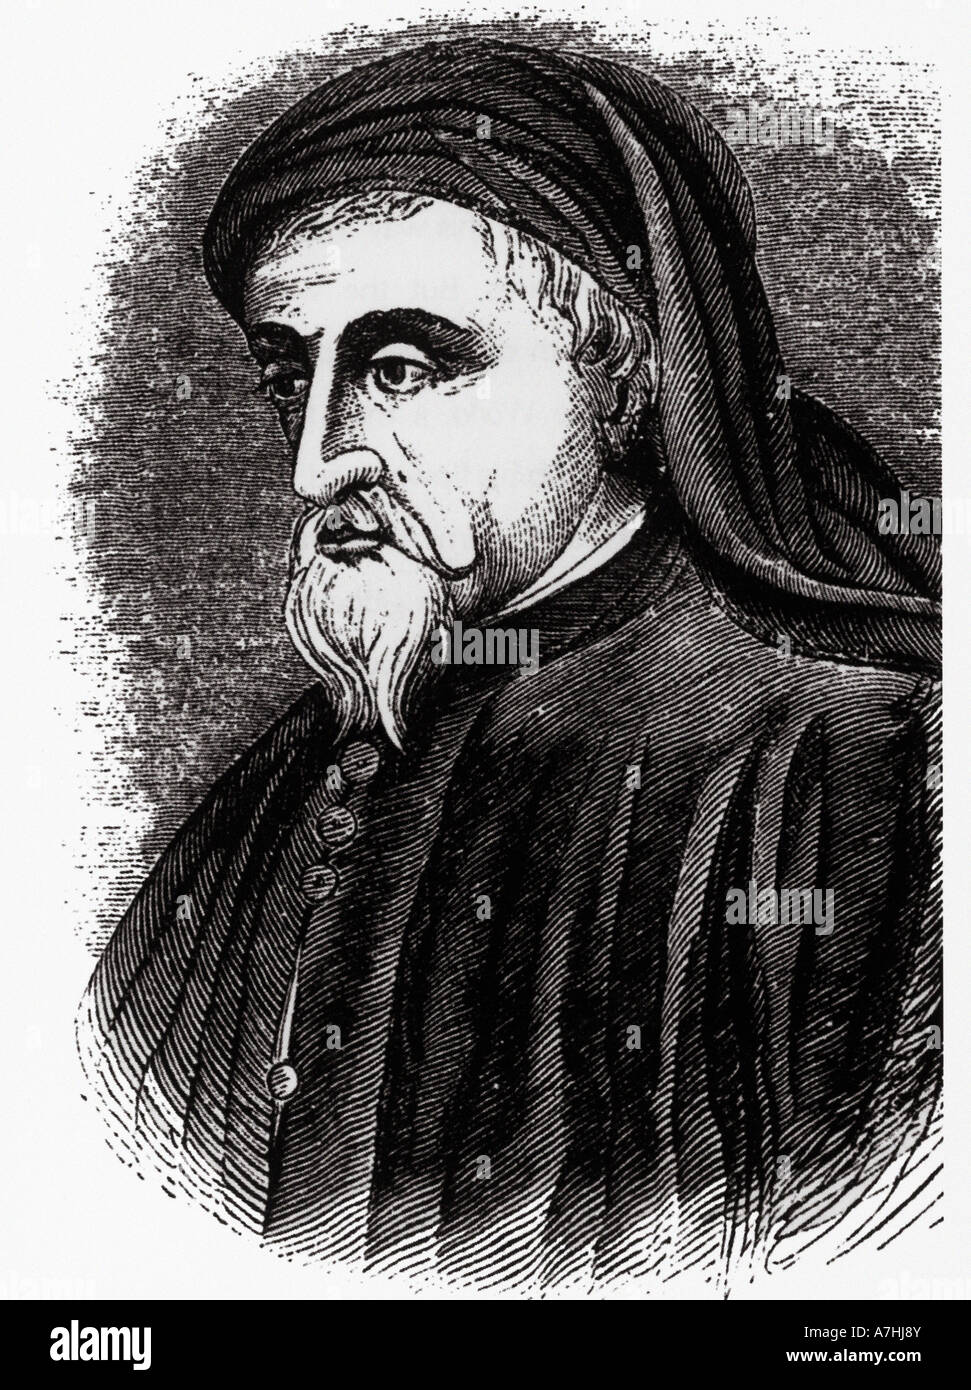 GEOFFREY CHAUCER  English poet bst know for his Canterbury Tales - Stock Image